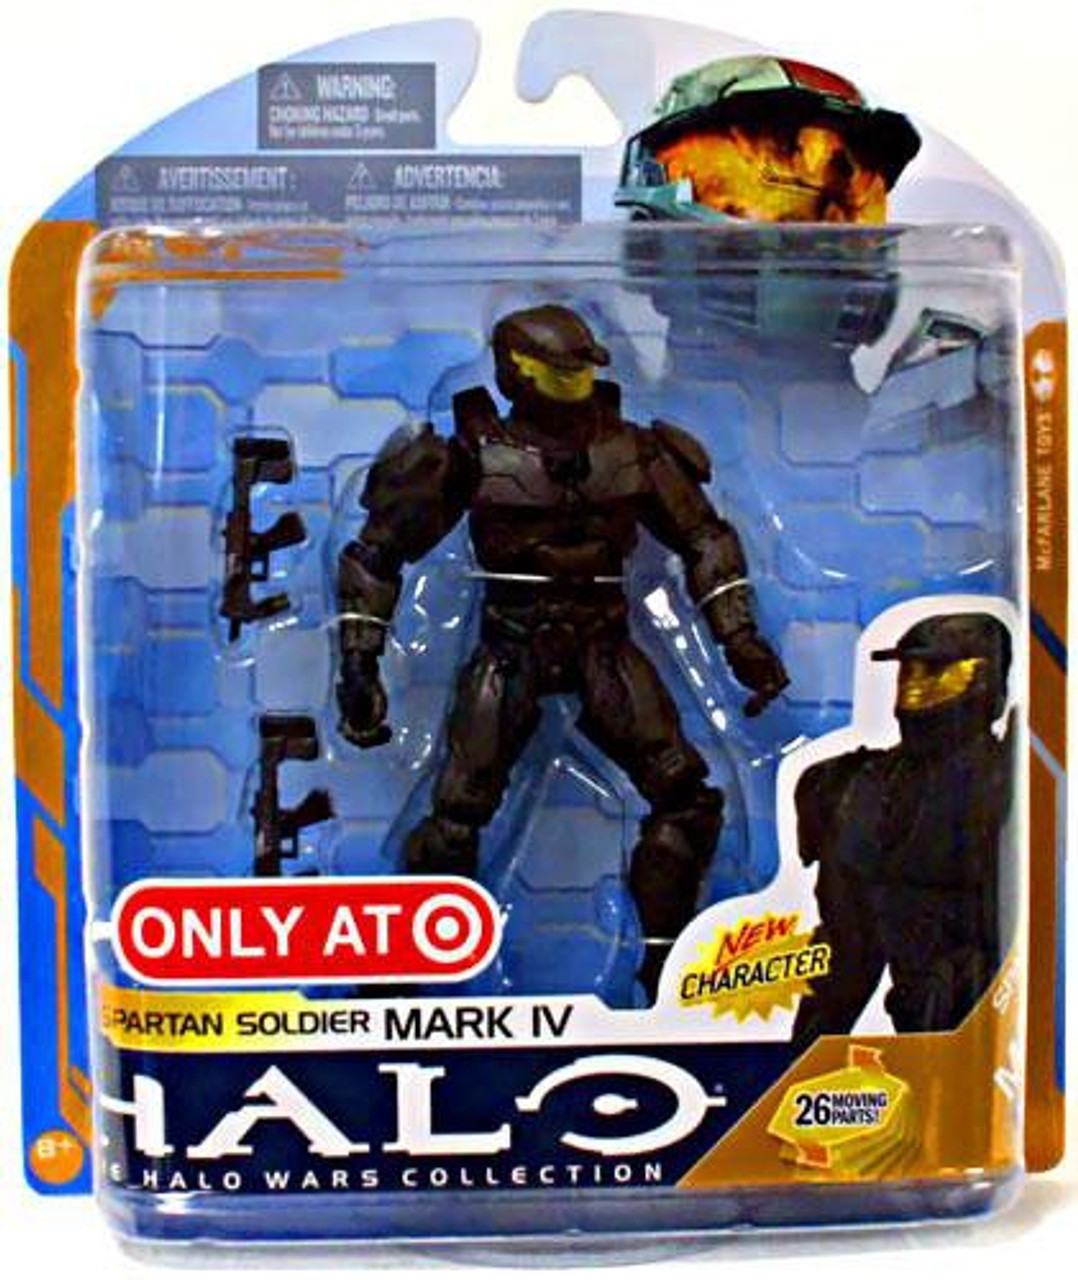 McFarlane Toys Halo Wars Series 8 Spartan Soldier Mark IV Exclusive Action Figure [Black]